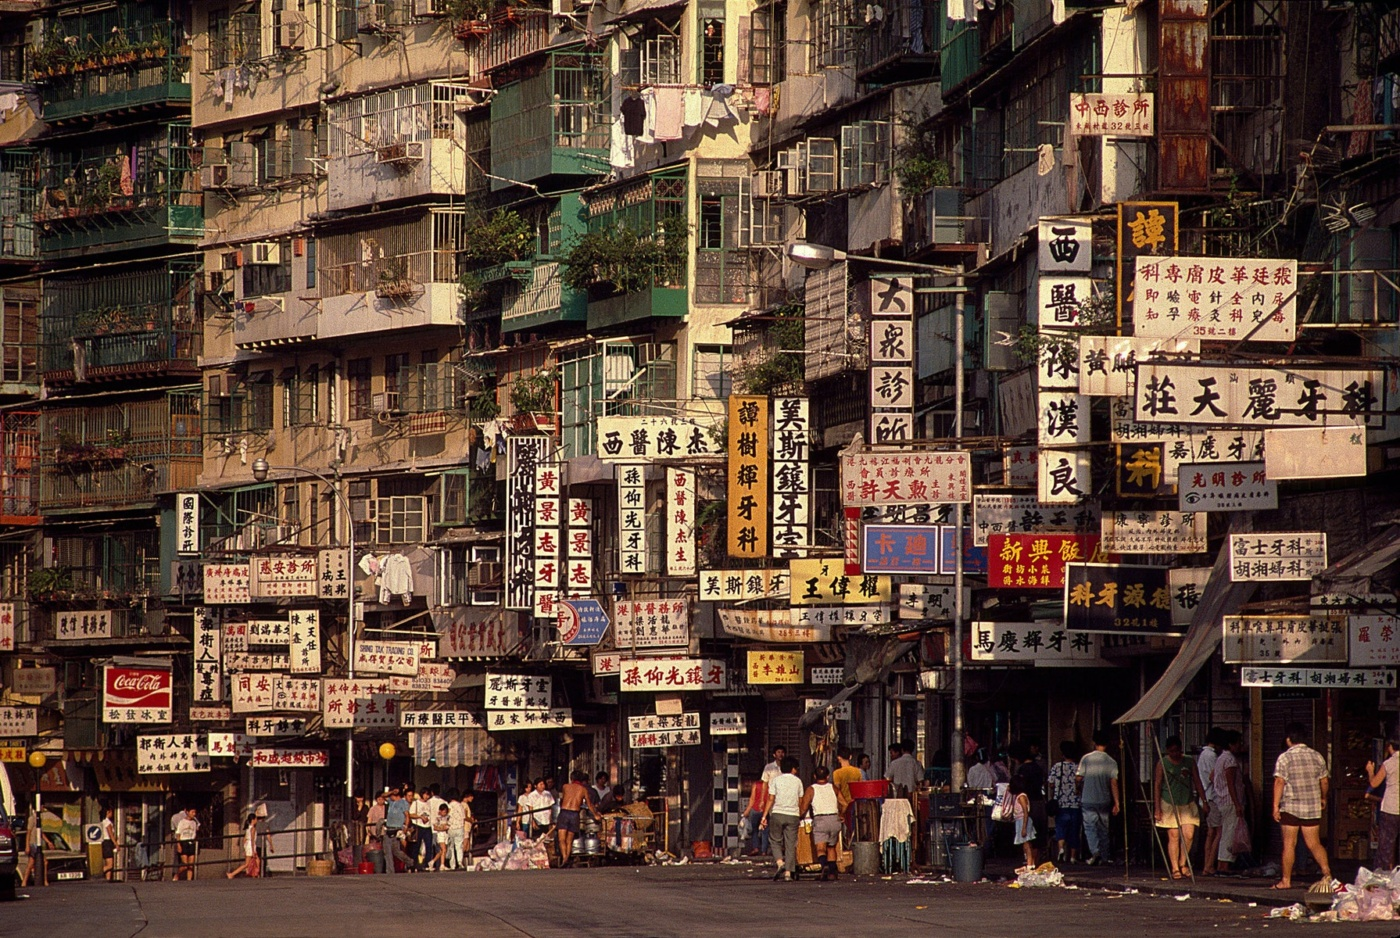 Die Kowloon Walled City: Anarchy in the HK